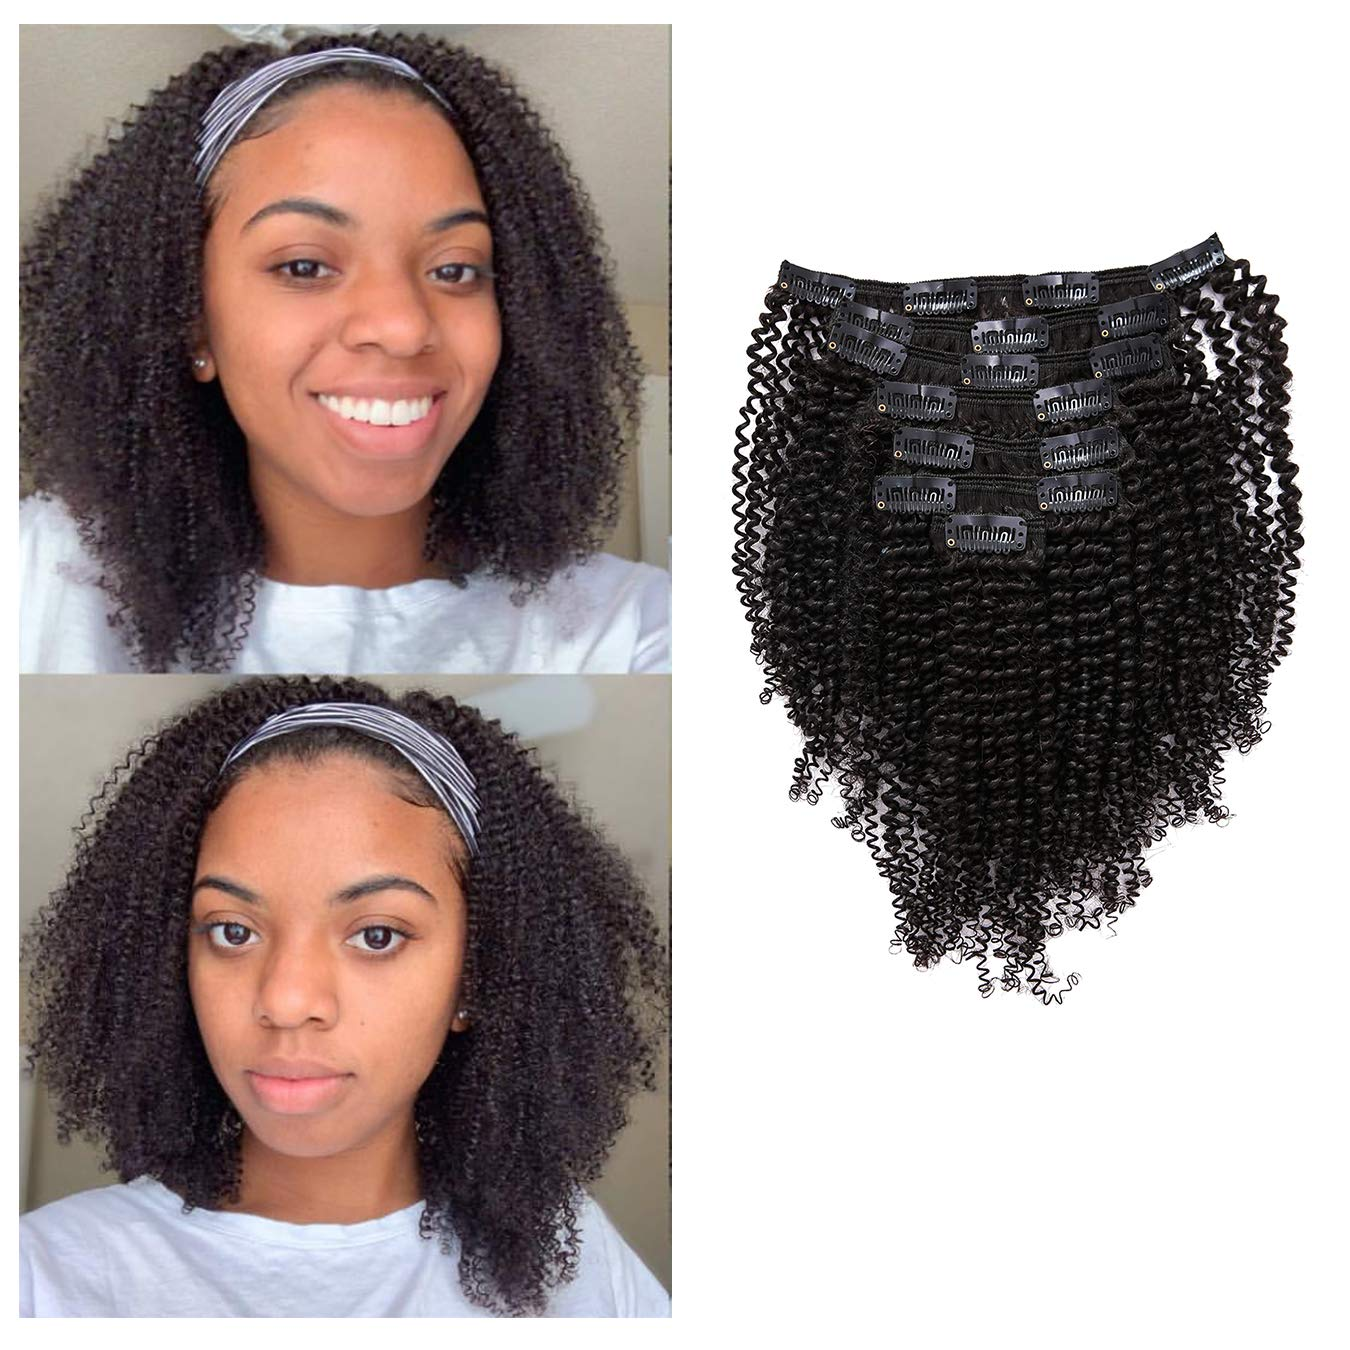 Anrosa Afro Coily Clip in Human Hair 1B Natural Black Afro Kinkys Curly Clip in Hair Extensions for Black Women 4A 4C Type Real Remy Hair Thick 120 Gram 10 Inch by Anrosa